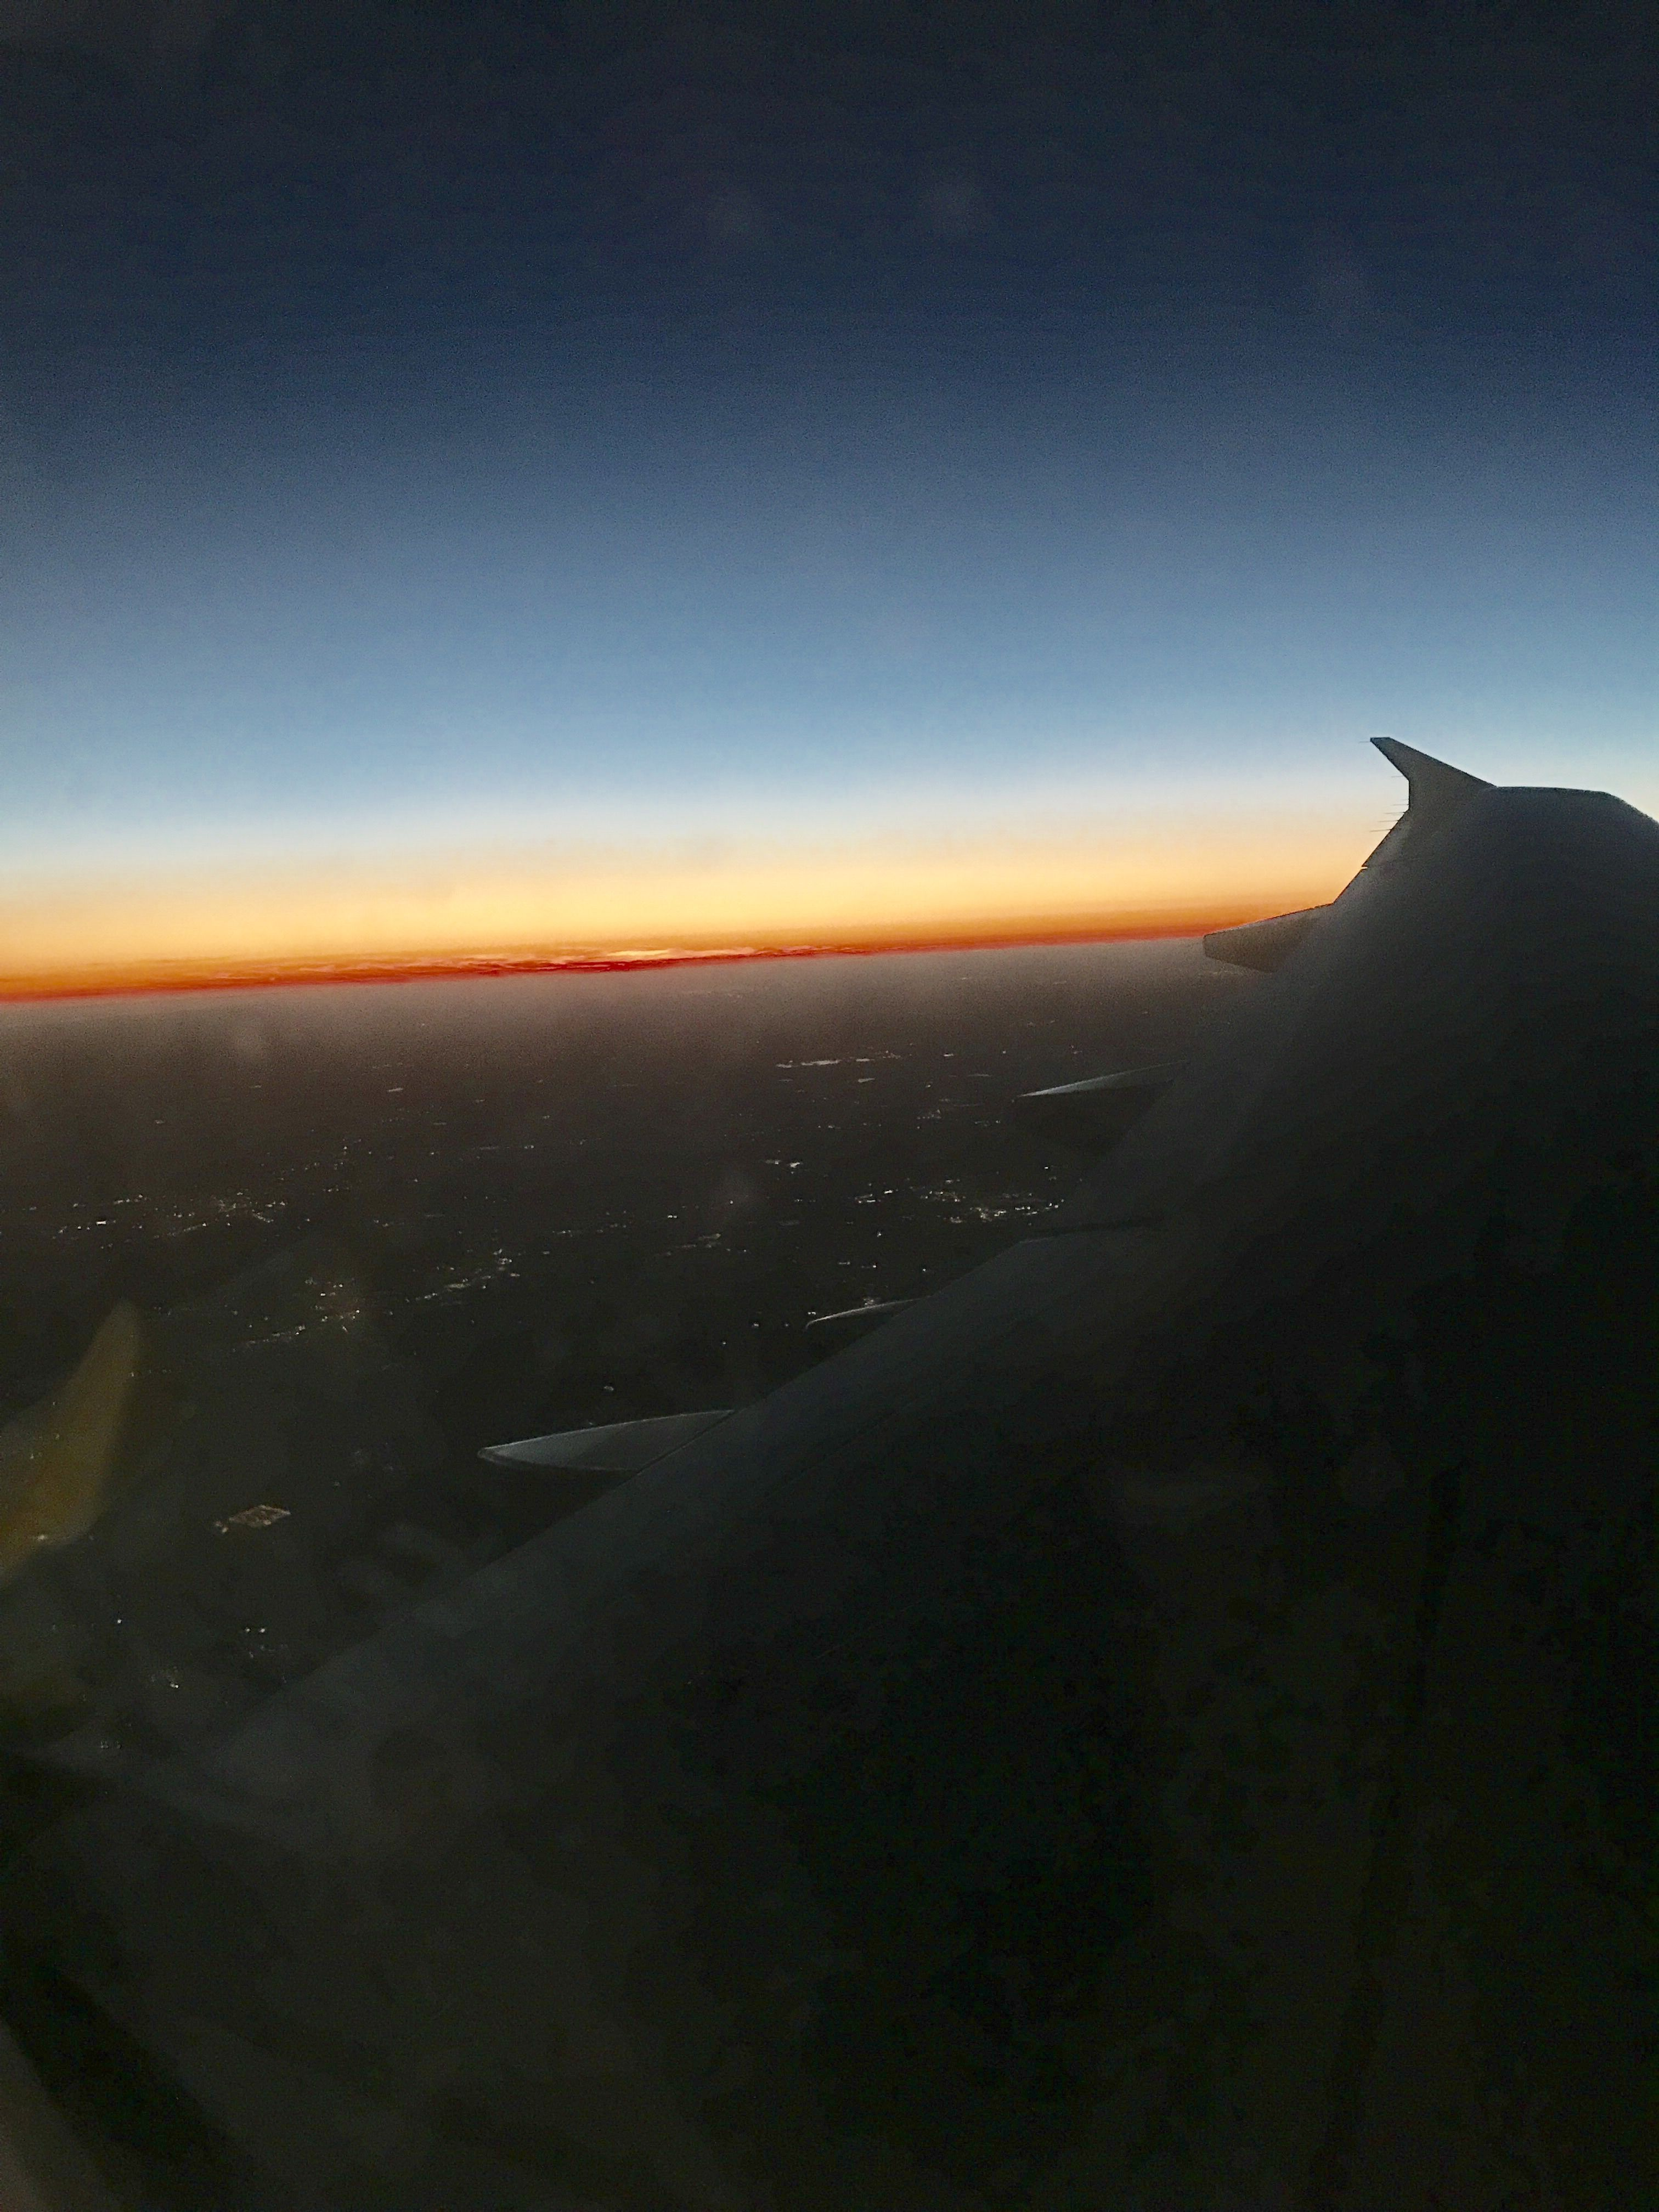 Sunset from 30,000 feet above Fort Lauderdale